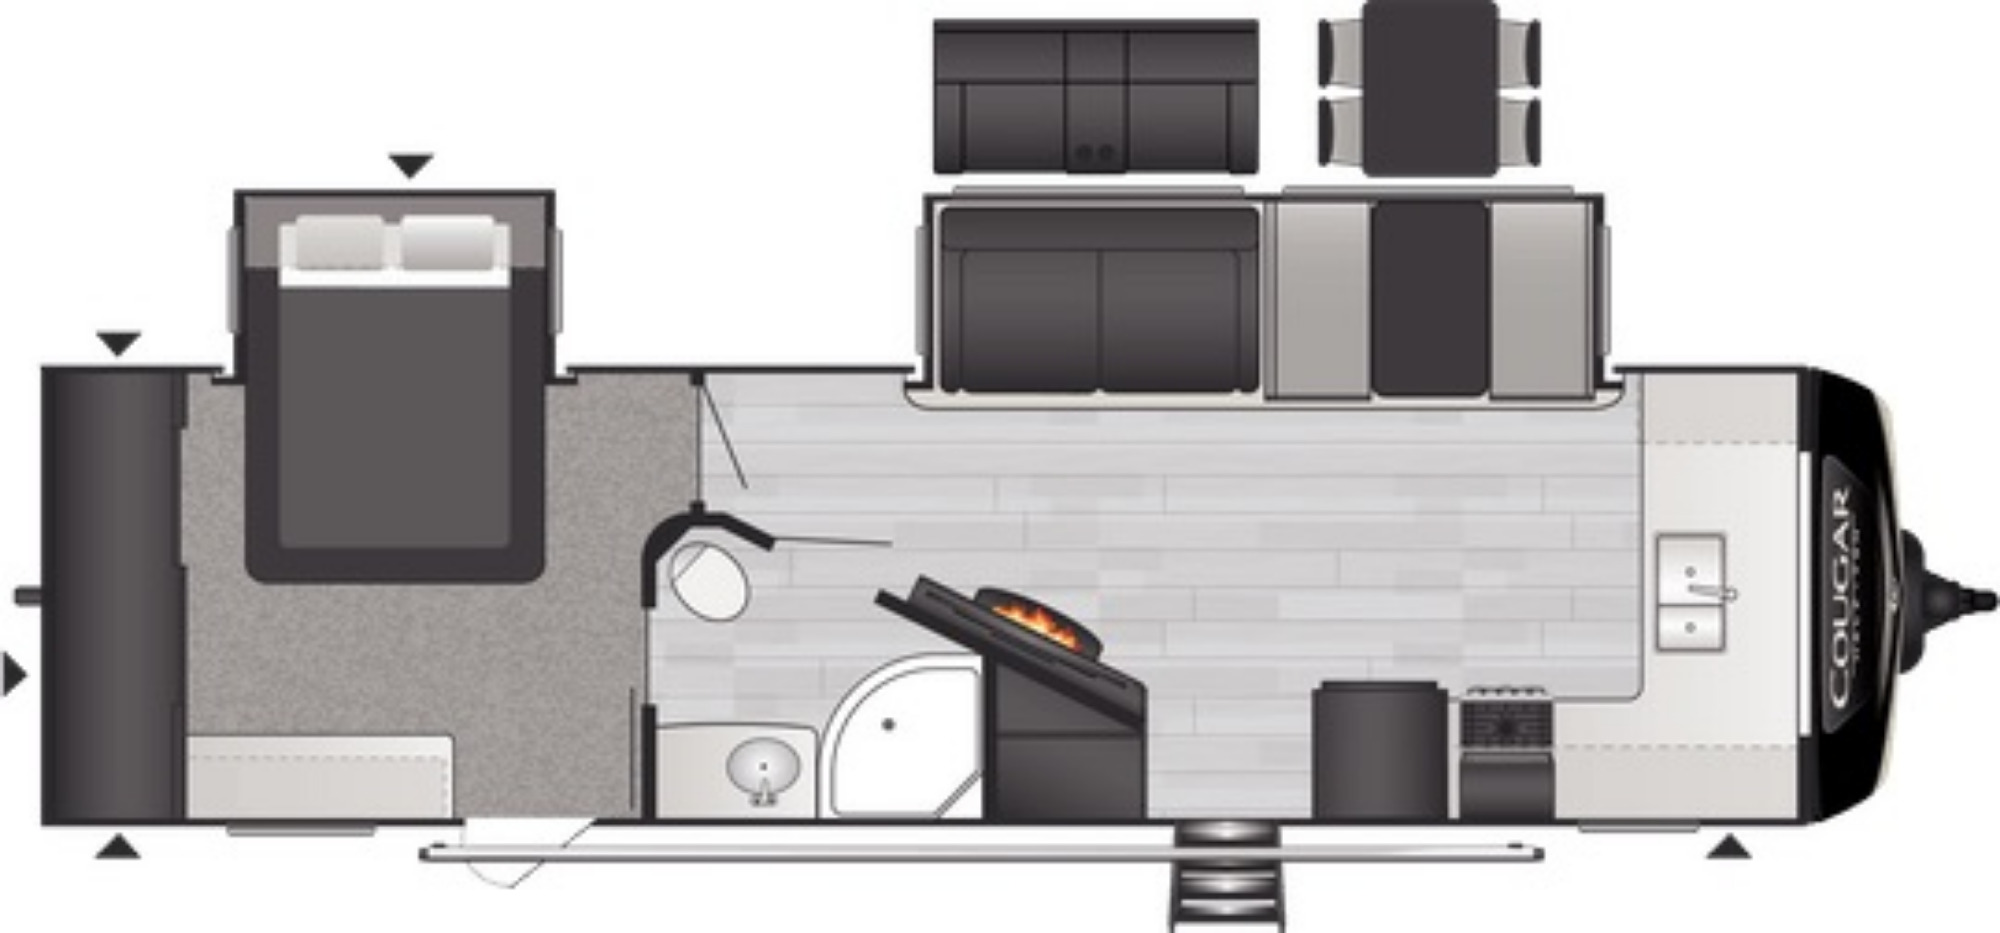 View Floor Plan for 2021 KEYSTONE COUGAR 29FKD